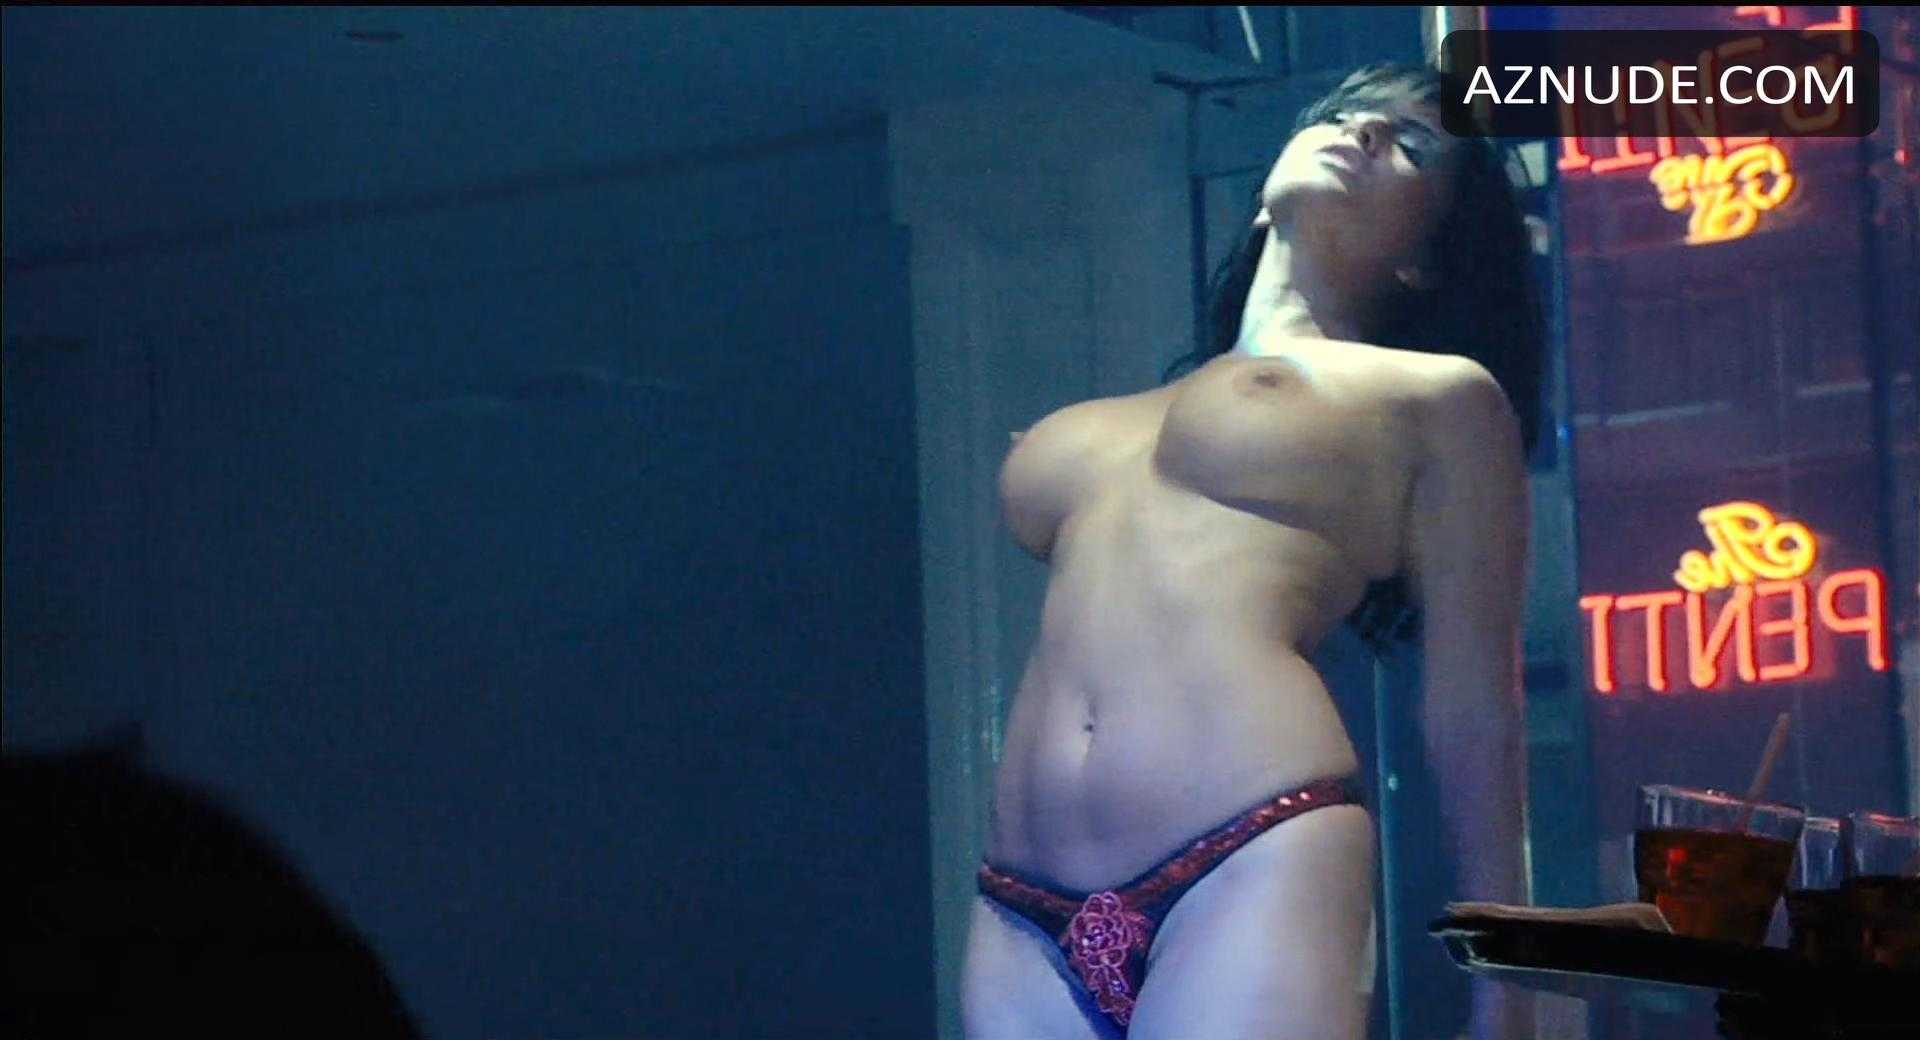 Milla jovovich sex scenes from movie